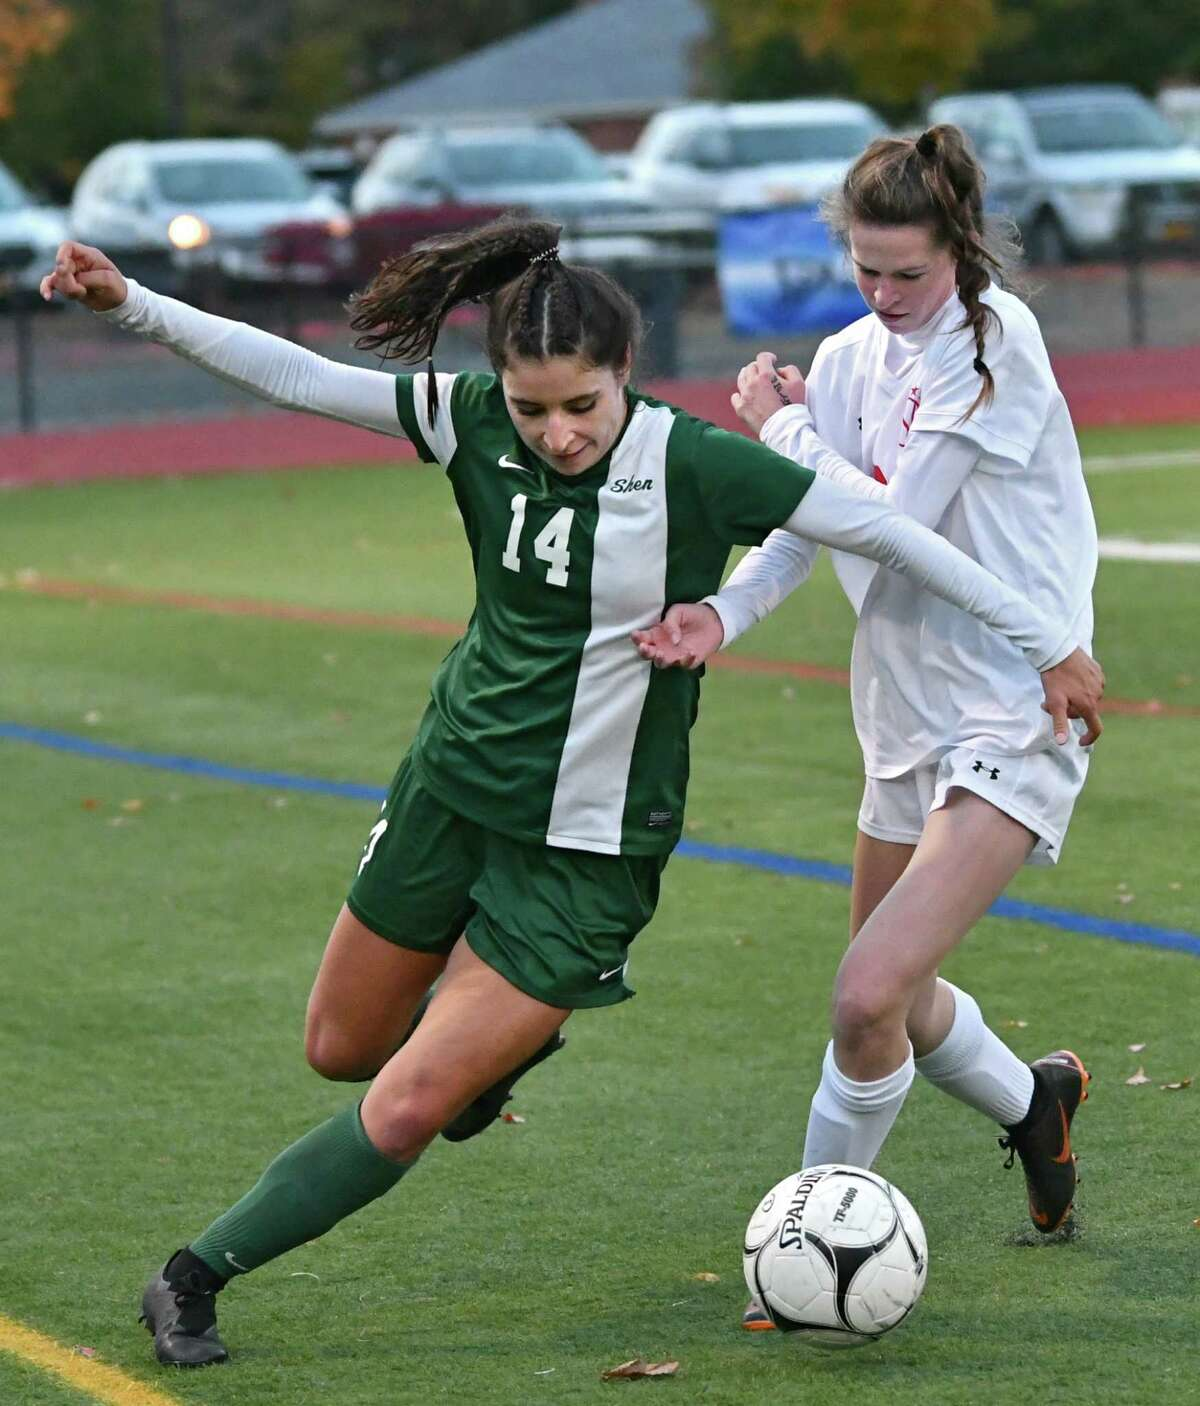 Shenendehowa's Michelle Clarkin, left, battles for the ball with Niskayuna's Lindsay Matthews during the Class AA girls' soccer semifinals on Wednesday, Oct. 24, 2018 in Stillwater, N.Y. (Lori Van Buren/Times Union)